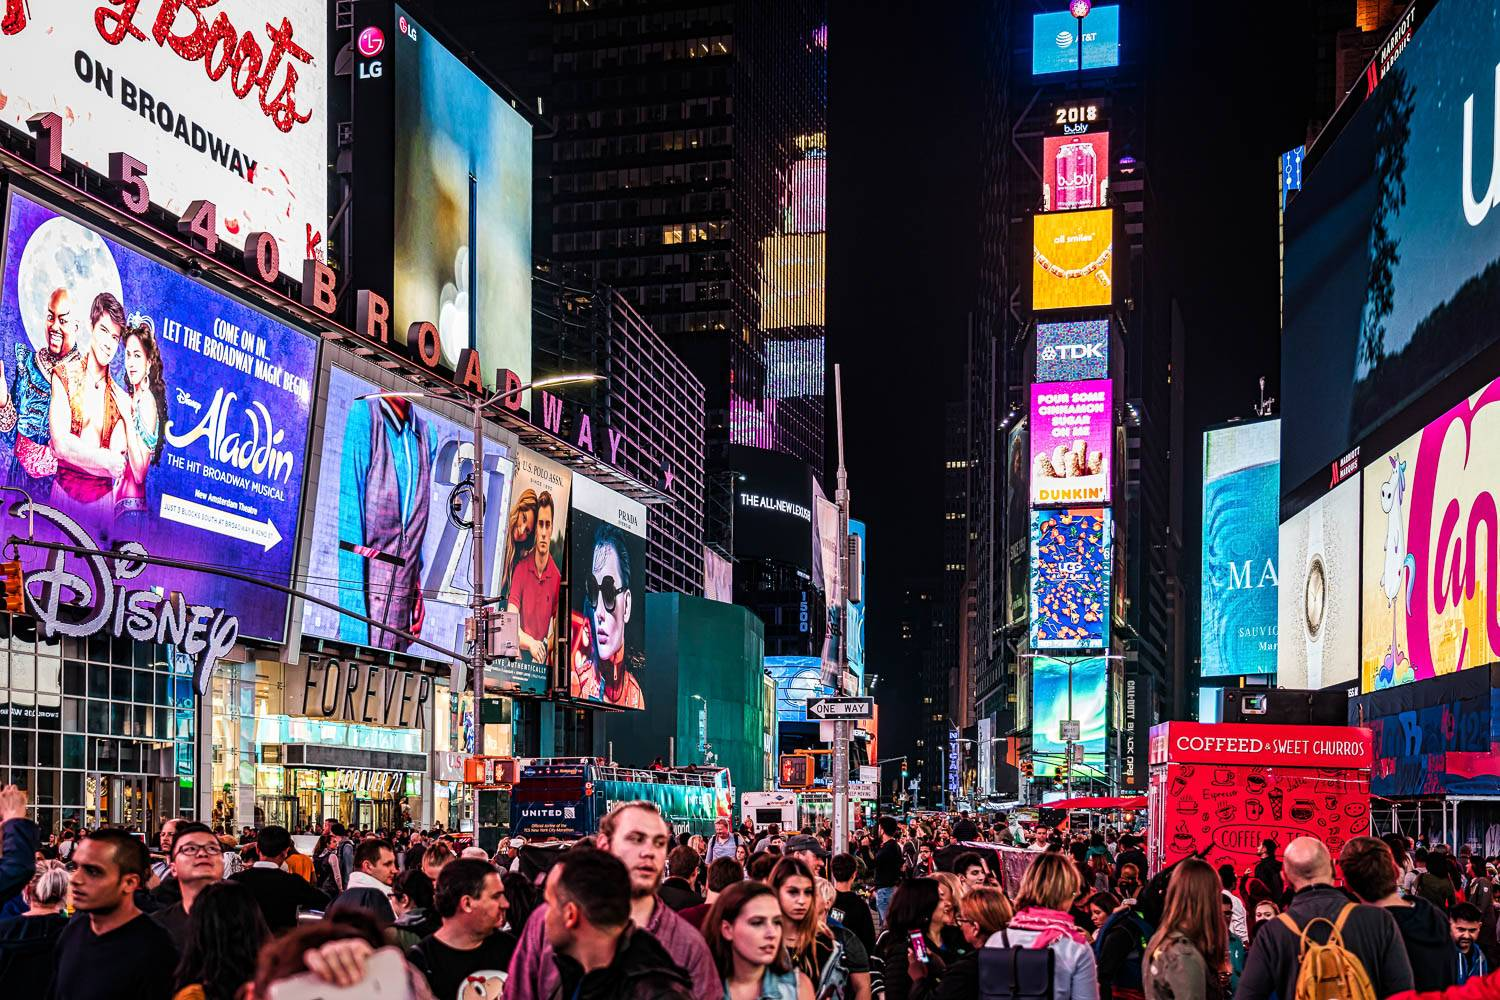 Image of crowds of people on Broadway with lit-up billboards and television screens on buildings shining brightly down.